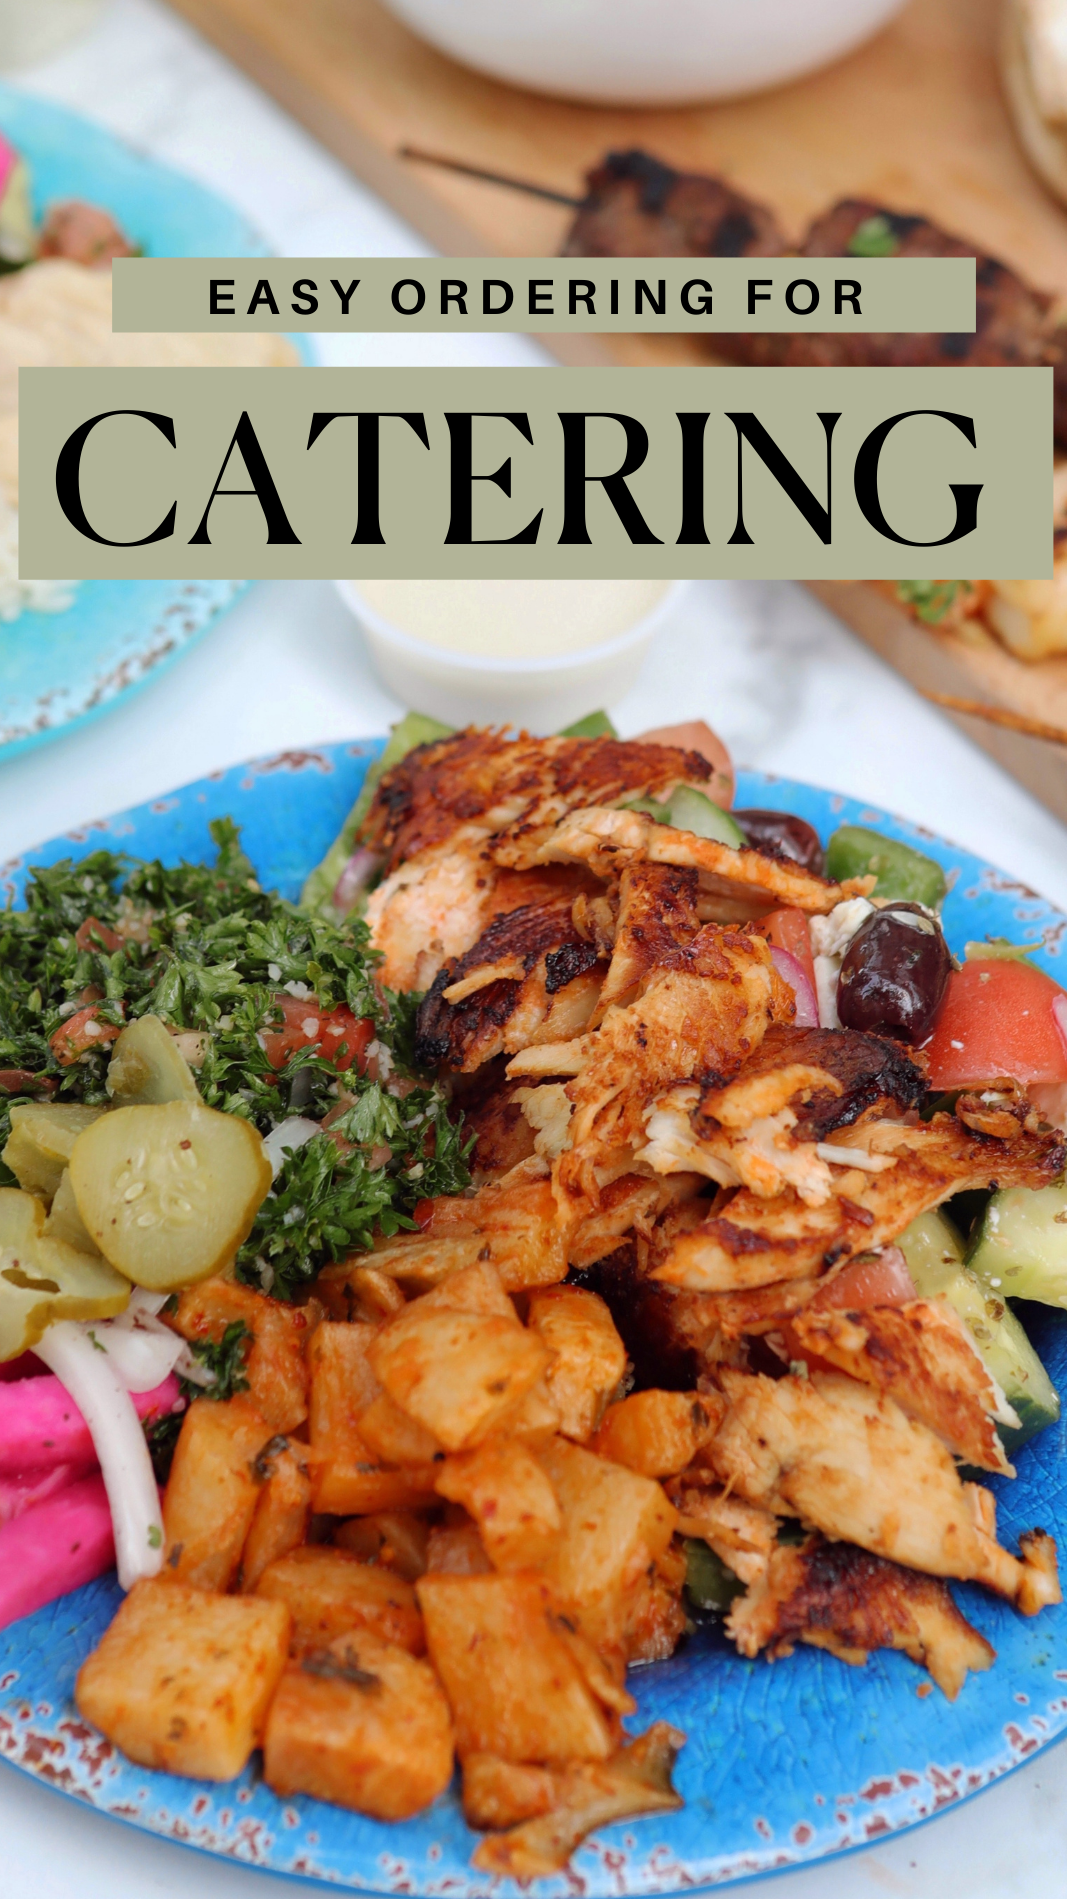 Easy Ordering for Catering